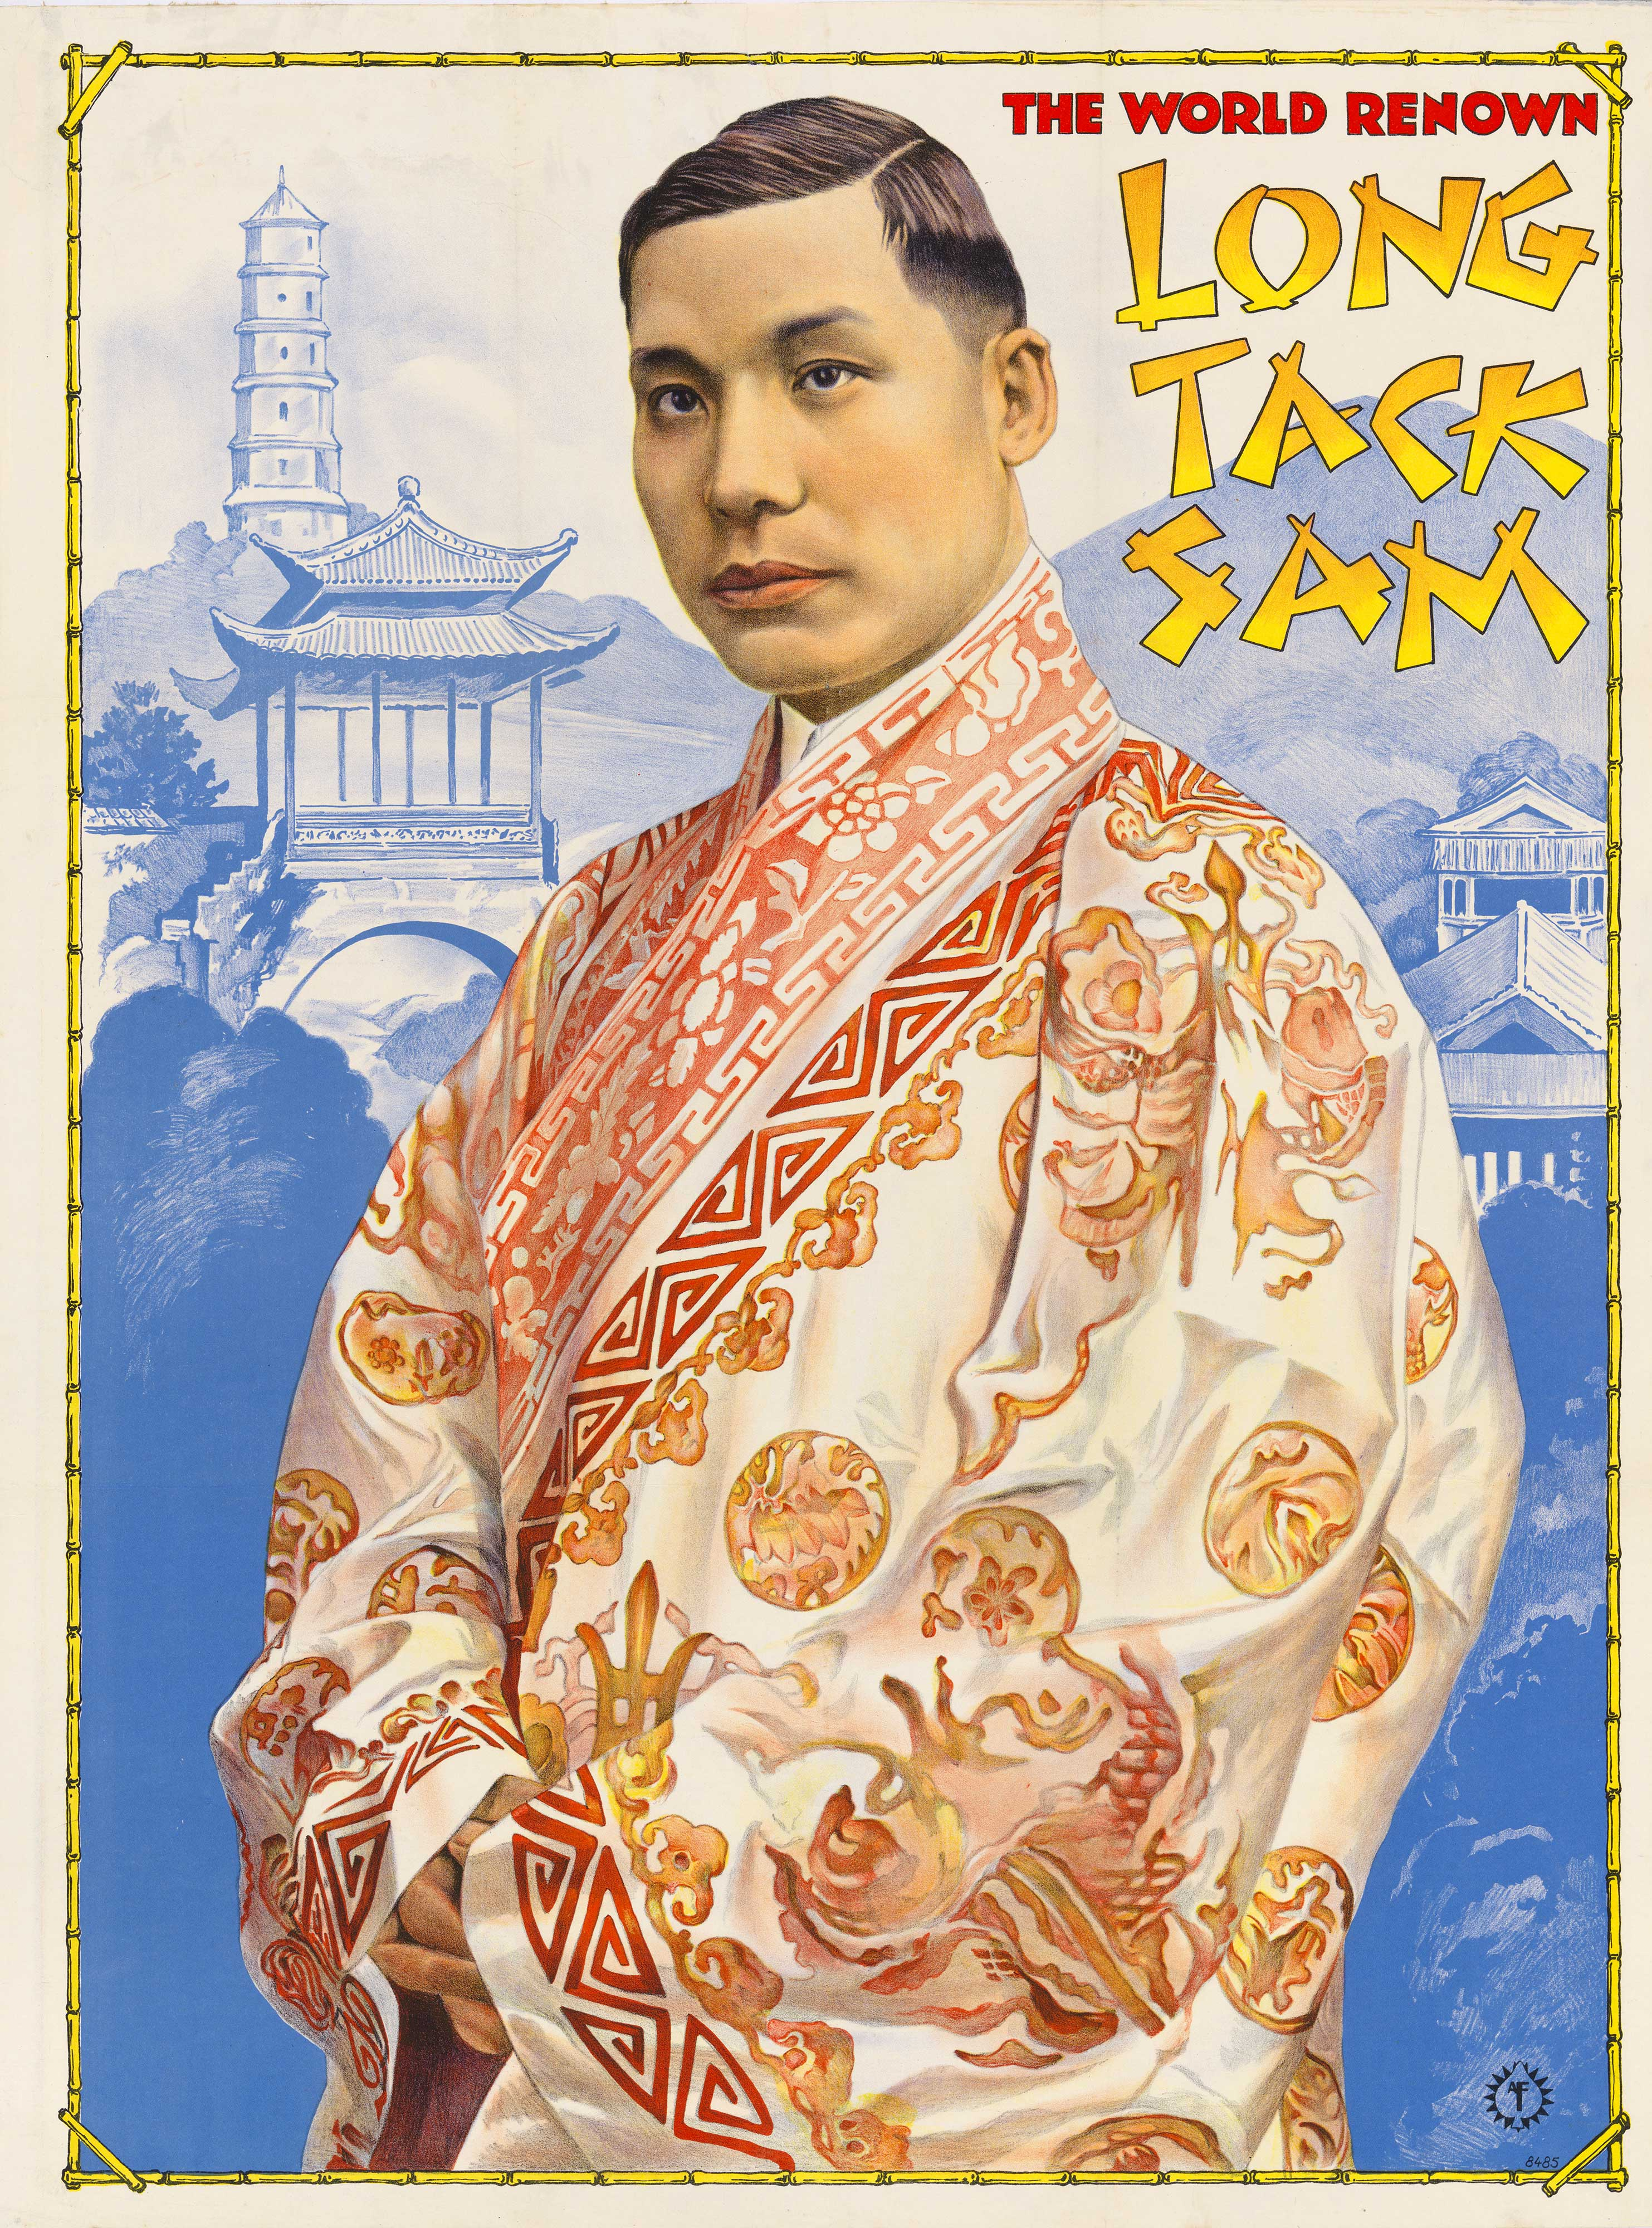 A poster of a man wearing a silky garment